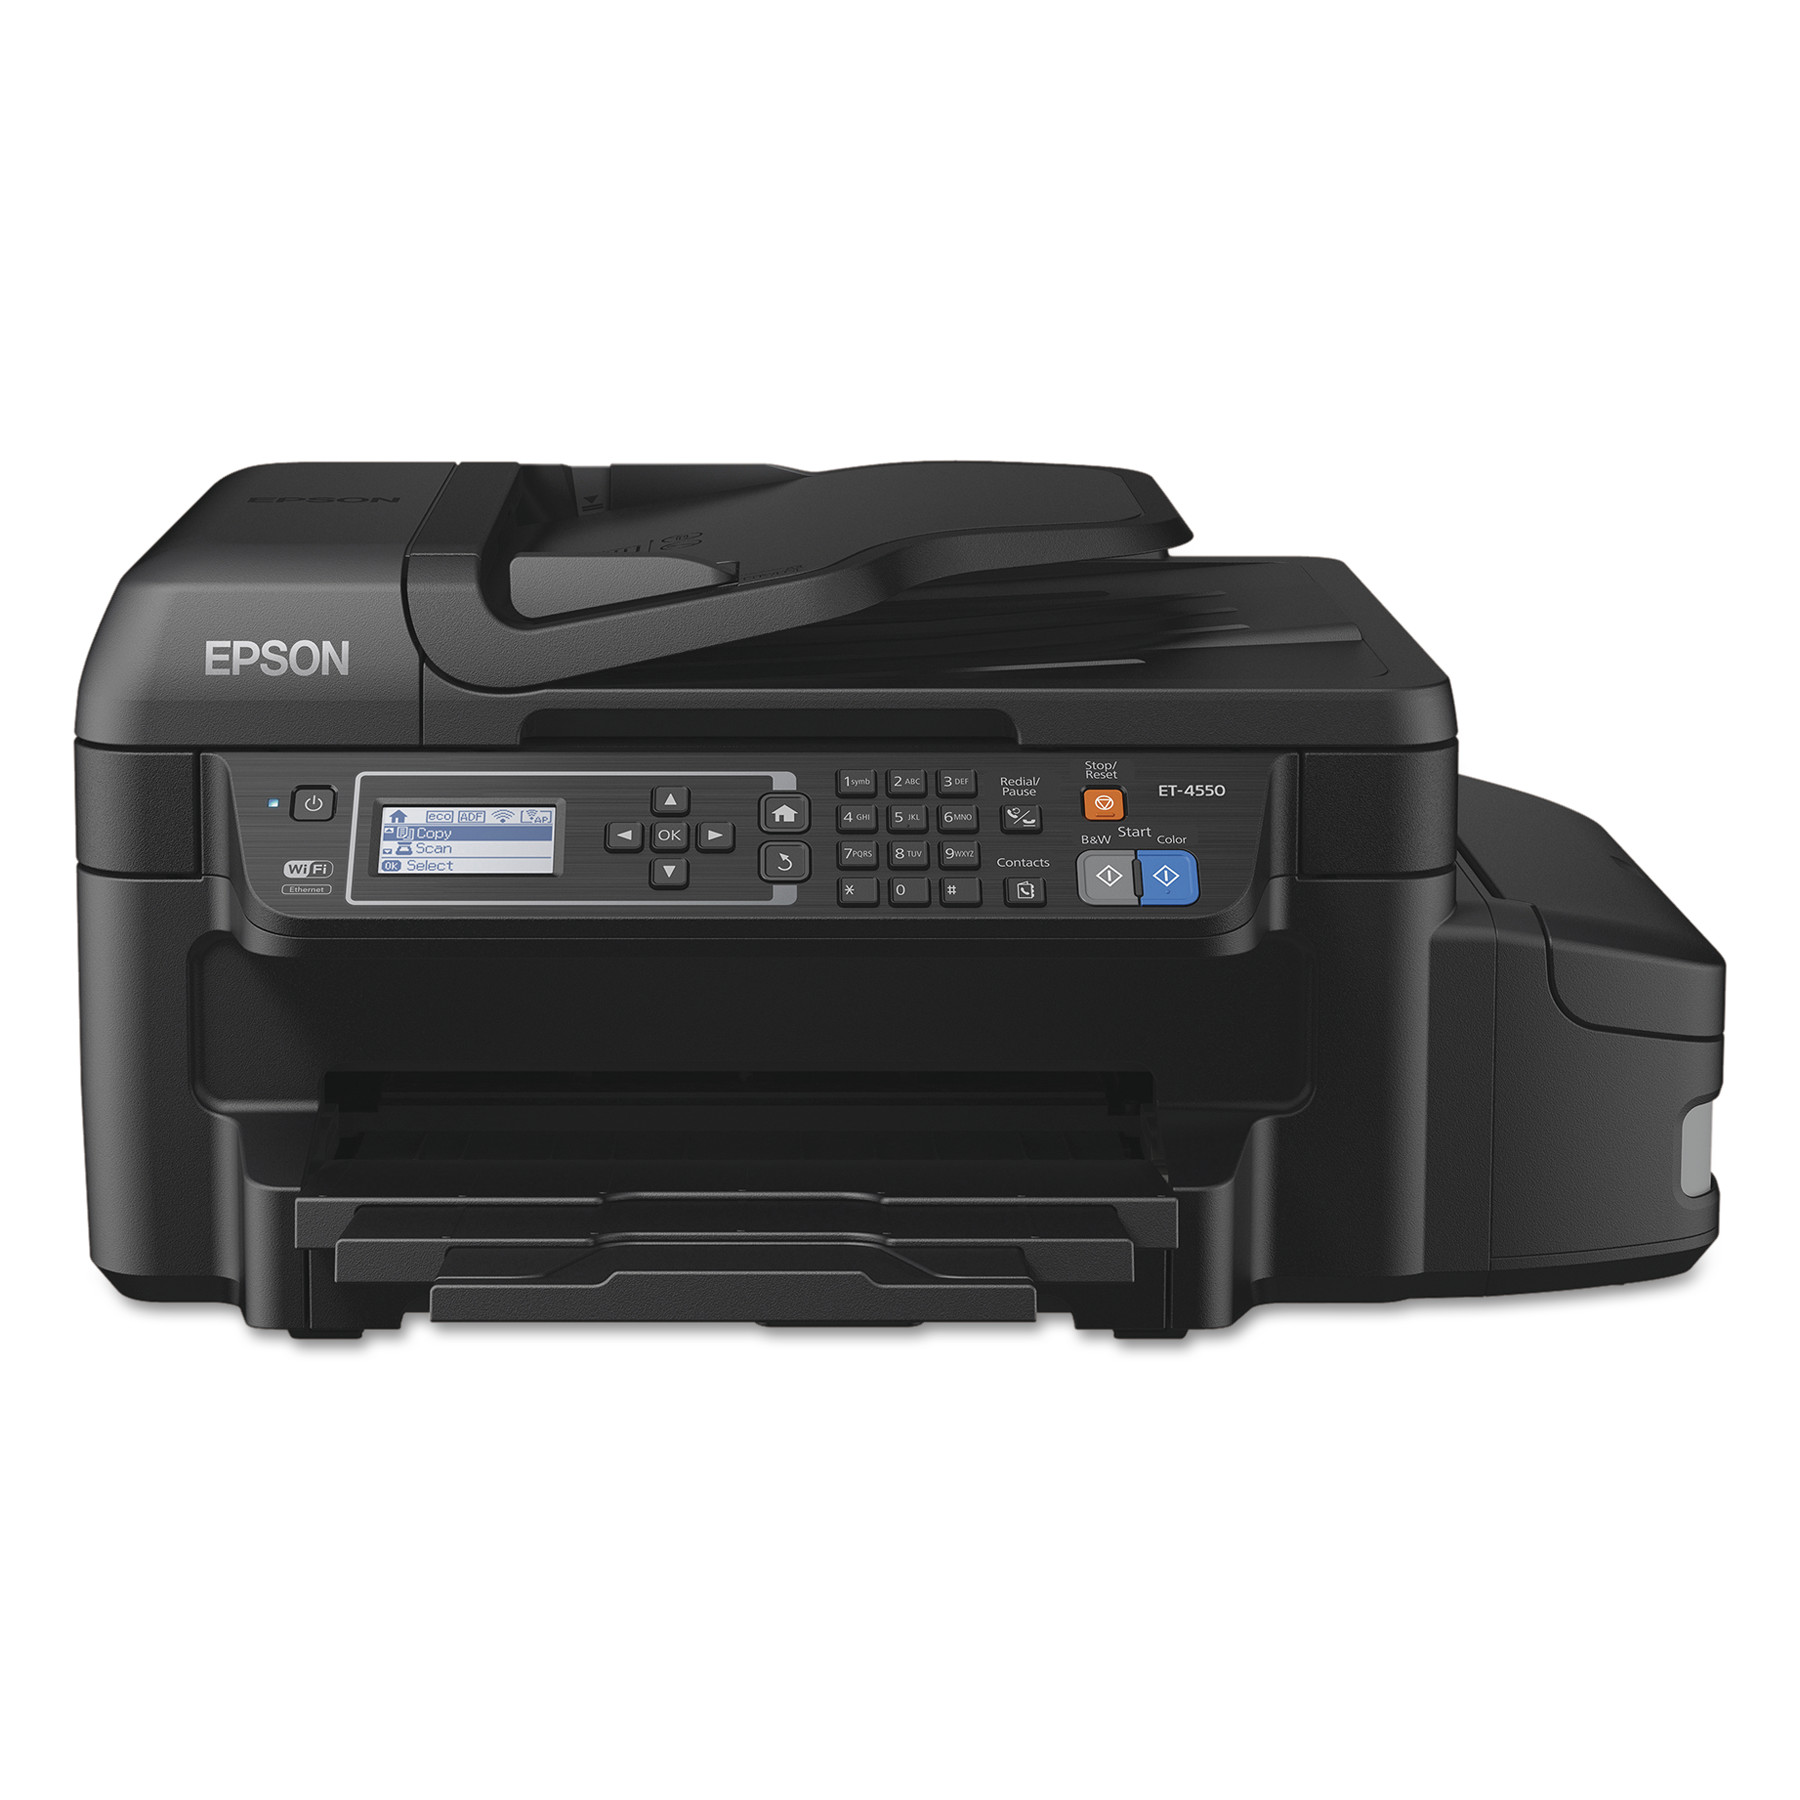 Epson WorkForce ET-4550 EcoTank Wi-Fi All-in-One Inkjet Printer, Copy Fax Print Scan by Epson